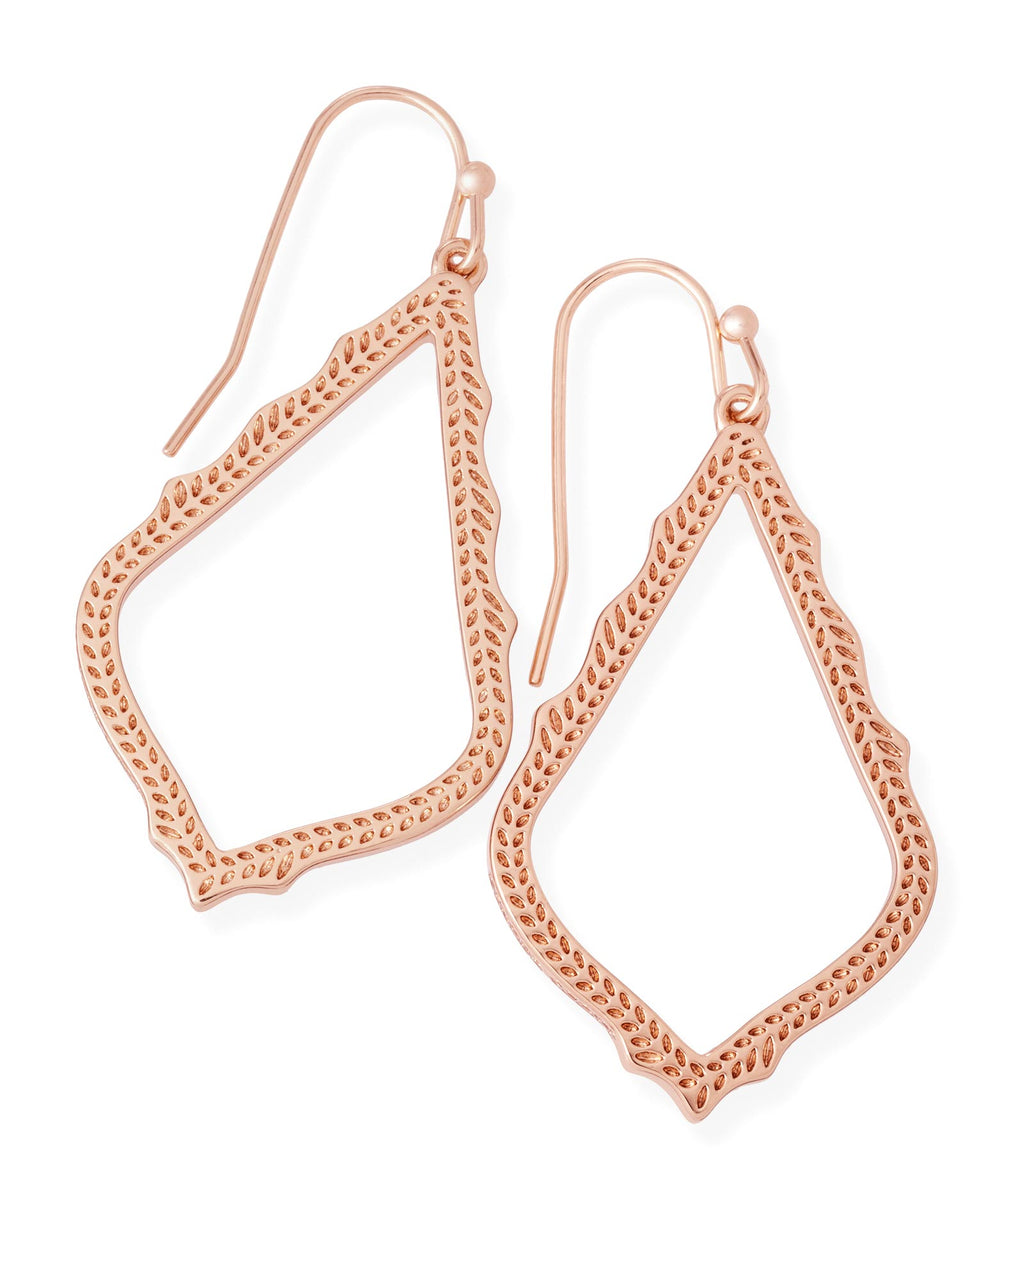 Kendra Scott Sophia Earrings - Rose Gold